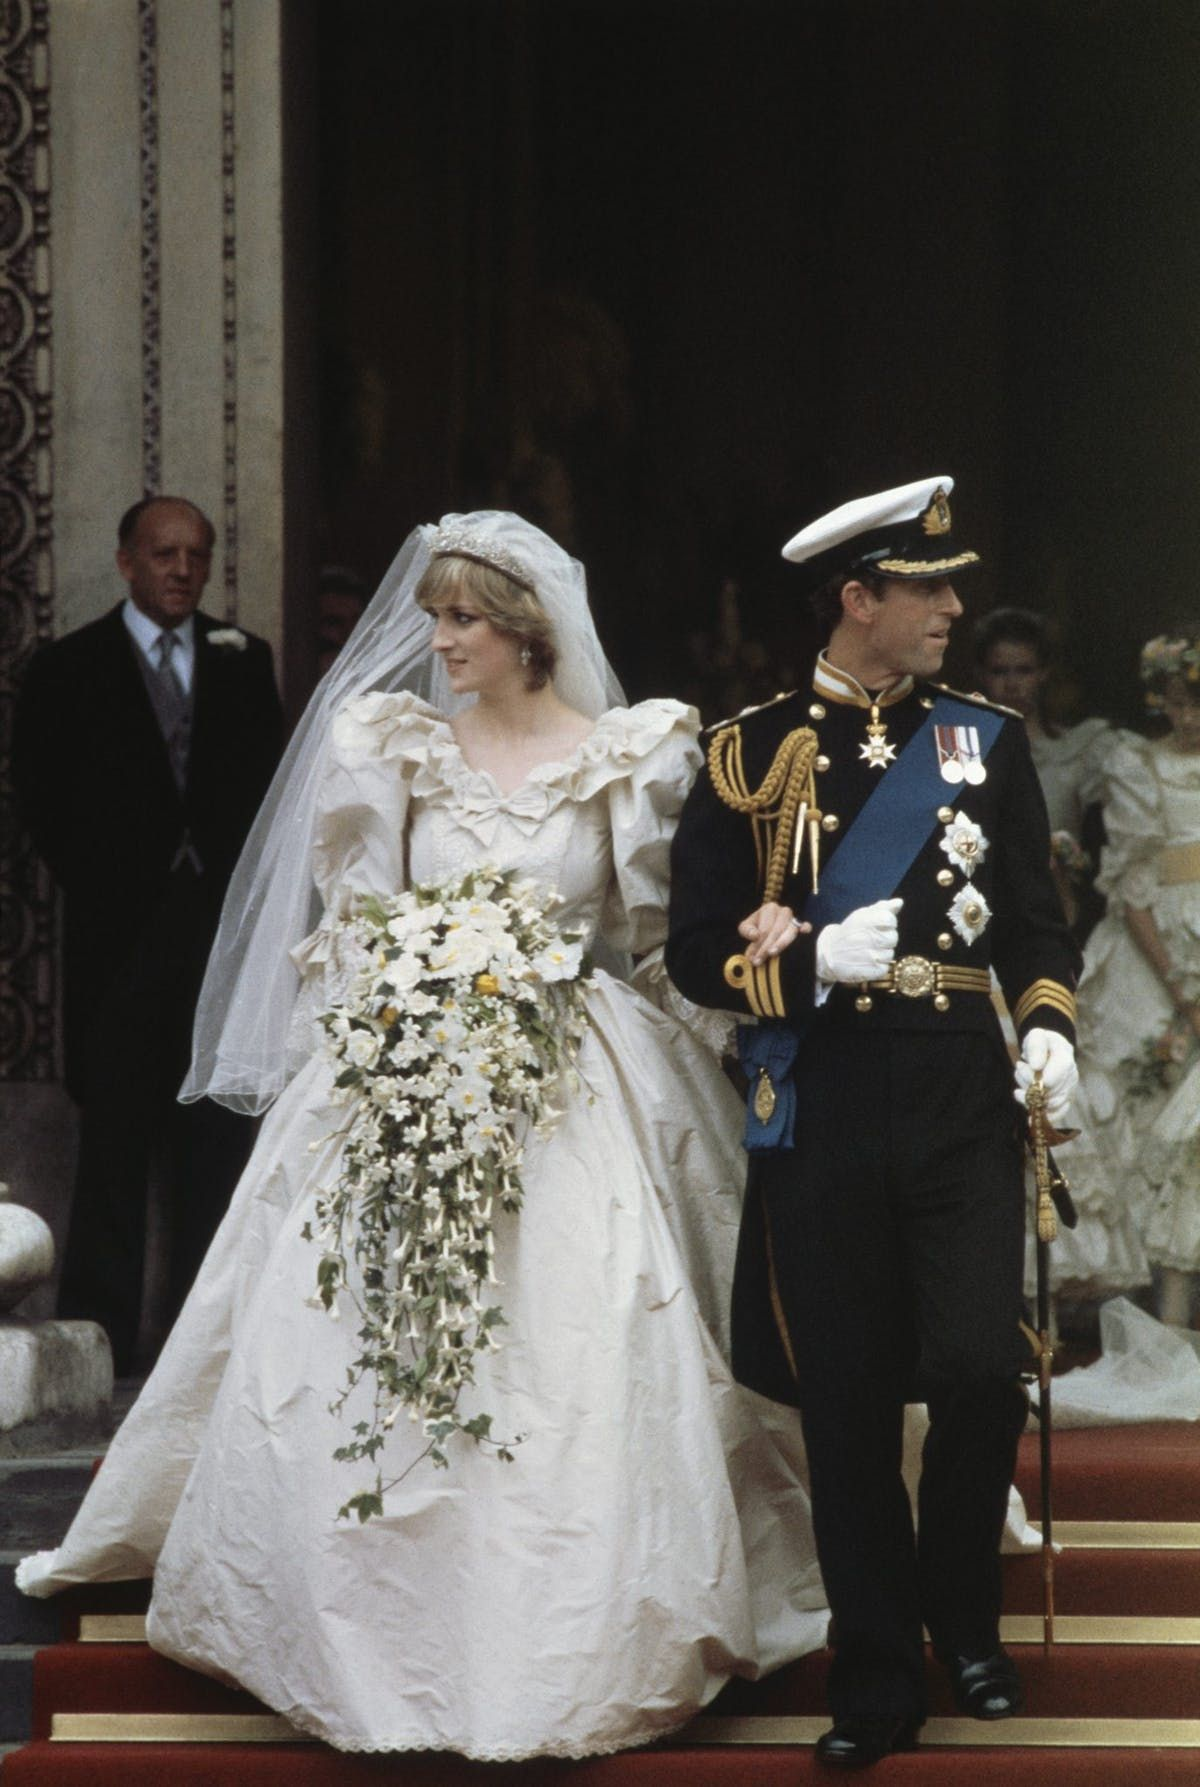 76cce9a3e5c Look back at the most memorable royal weddings of the and centuries from  all across the world and glimpse fairy tales made real.